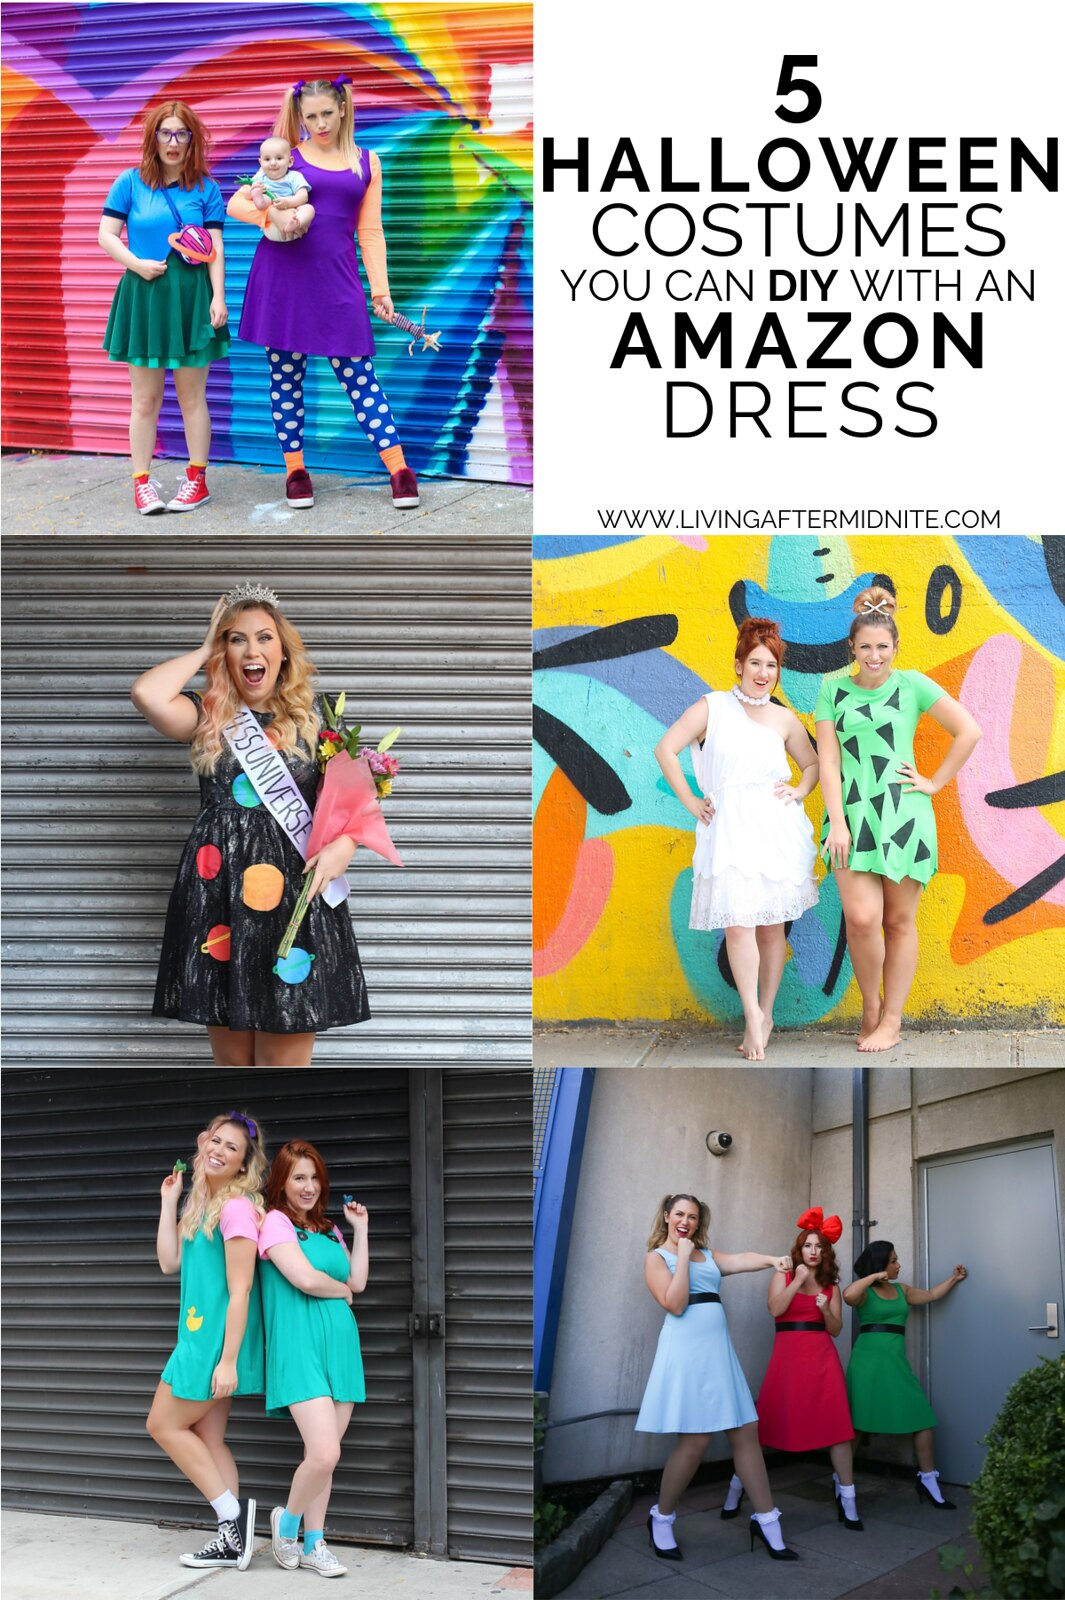 5 Costumes You Can DIY with an Amazon Dress | Easy DIY Halloween Costumes